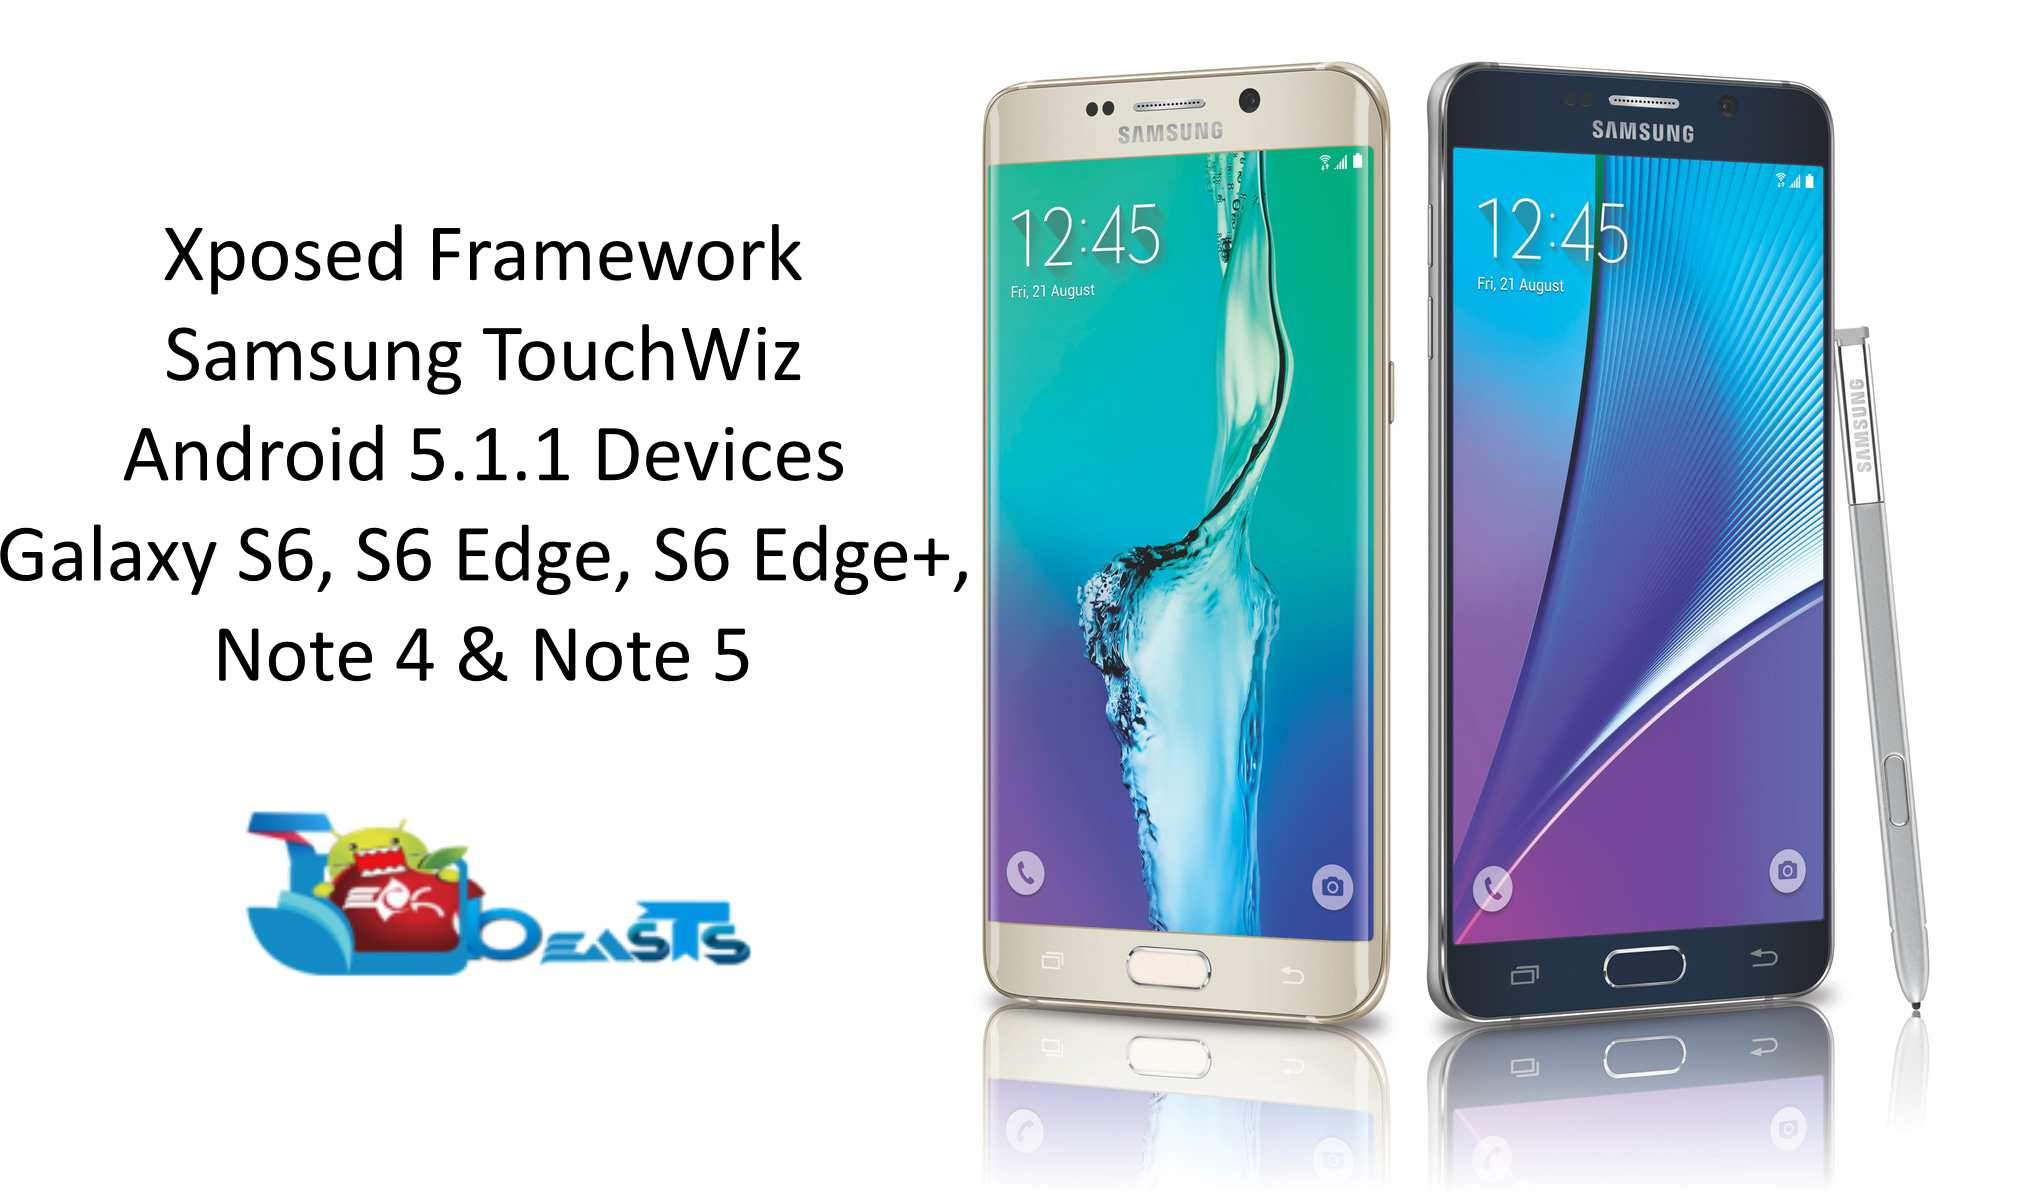 How To Install Xposed Framework On Galaxy S6, S6 Edge, Note